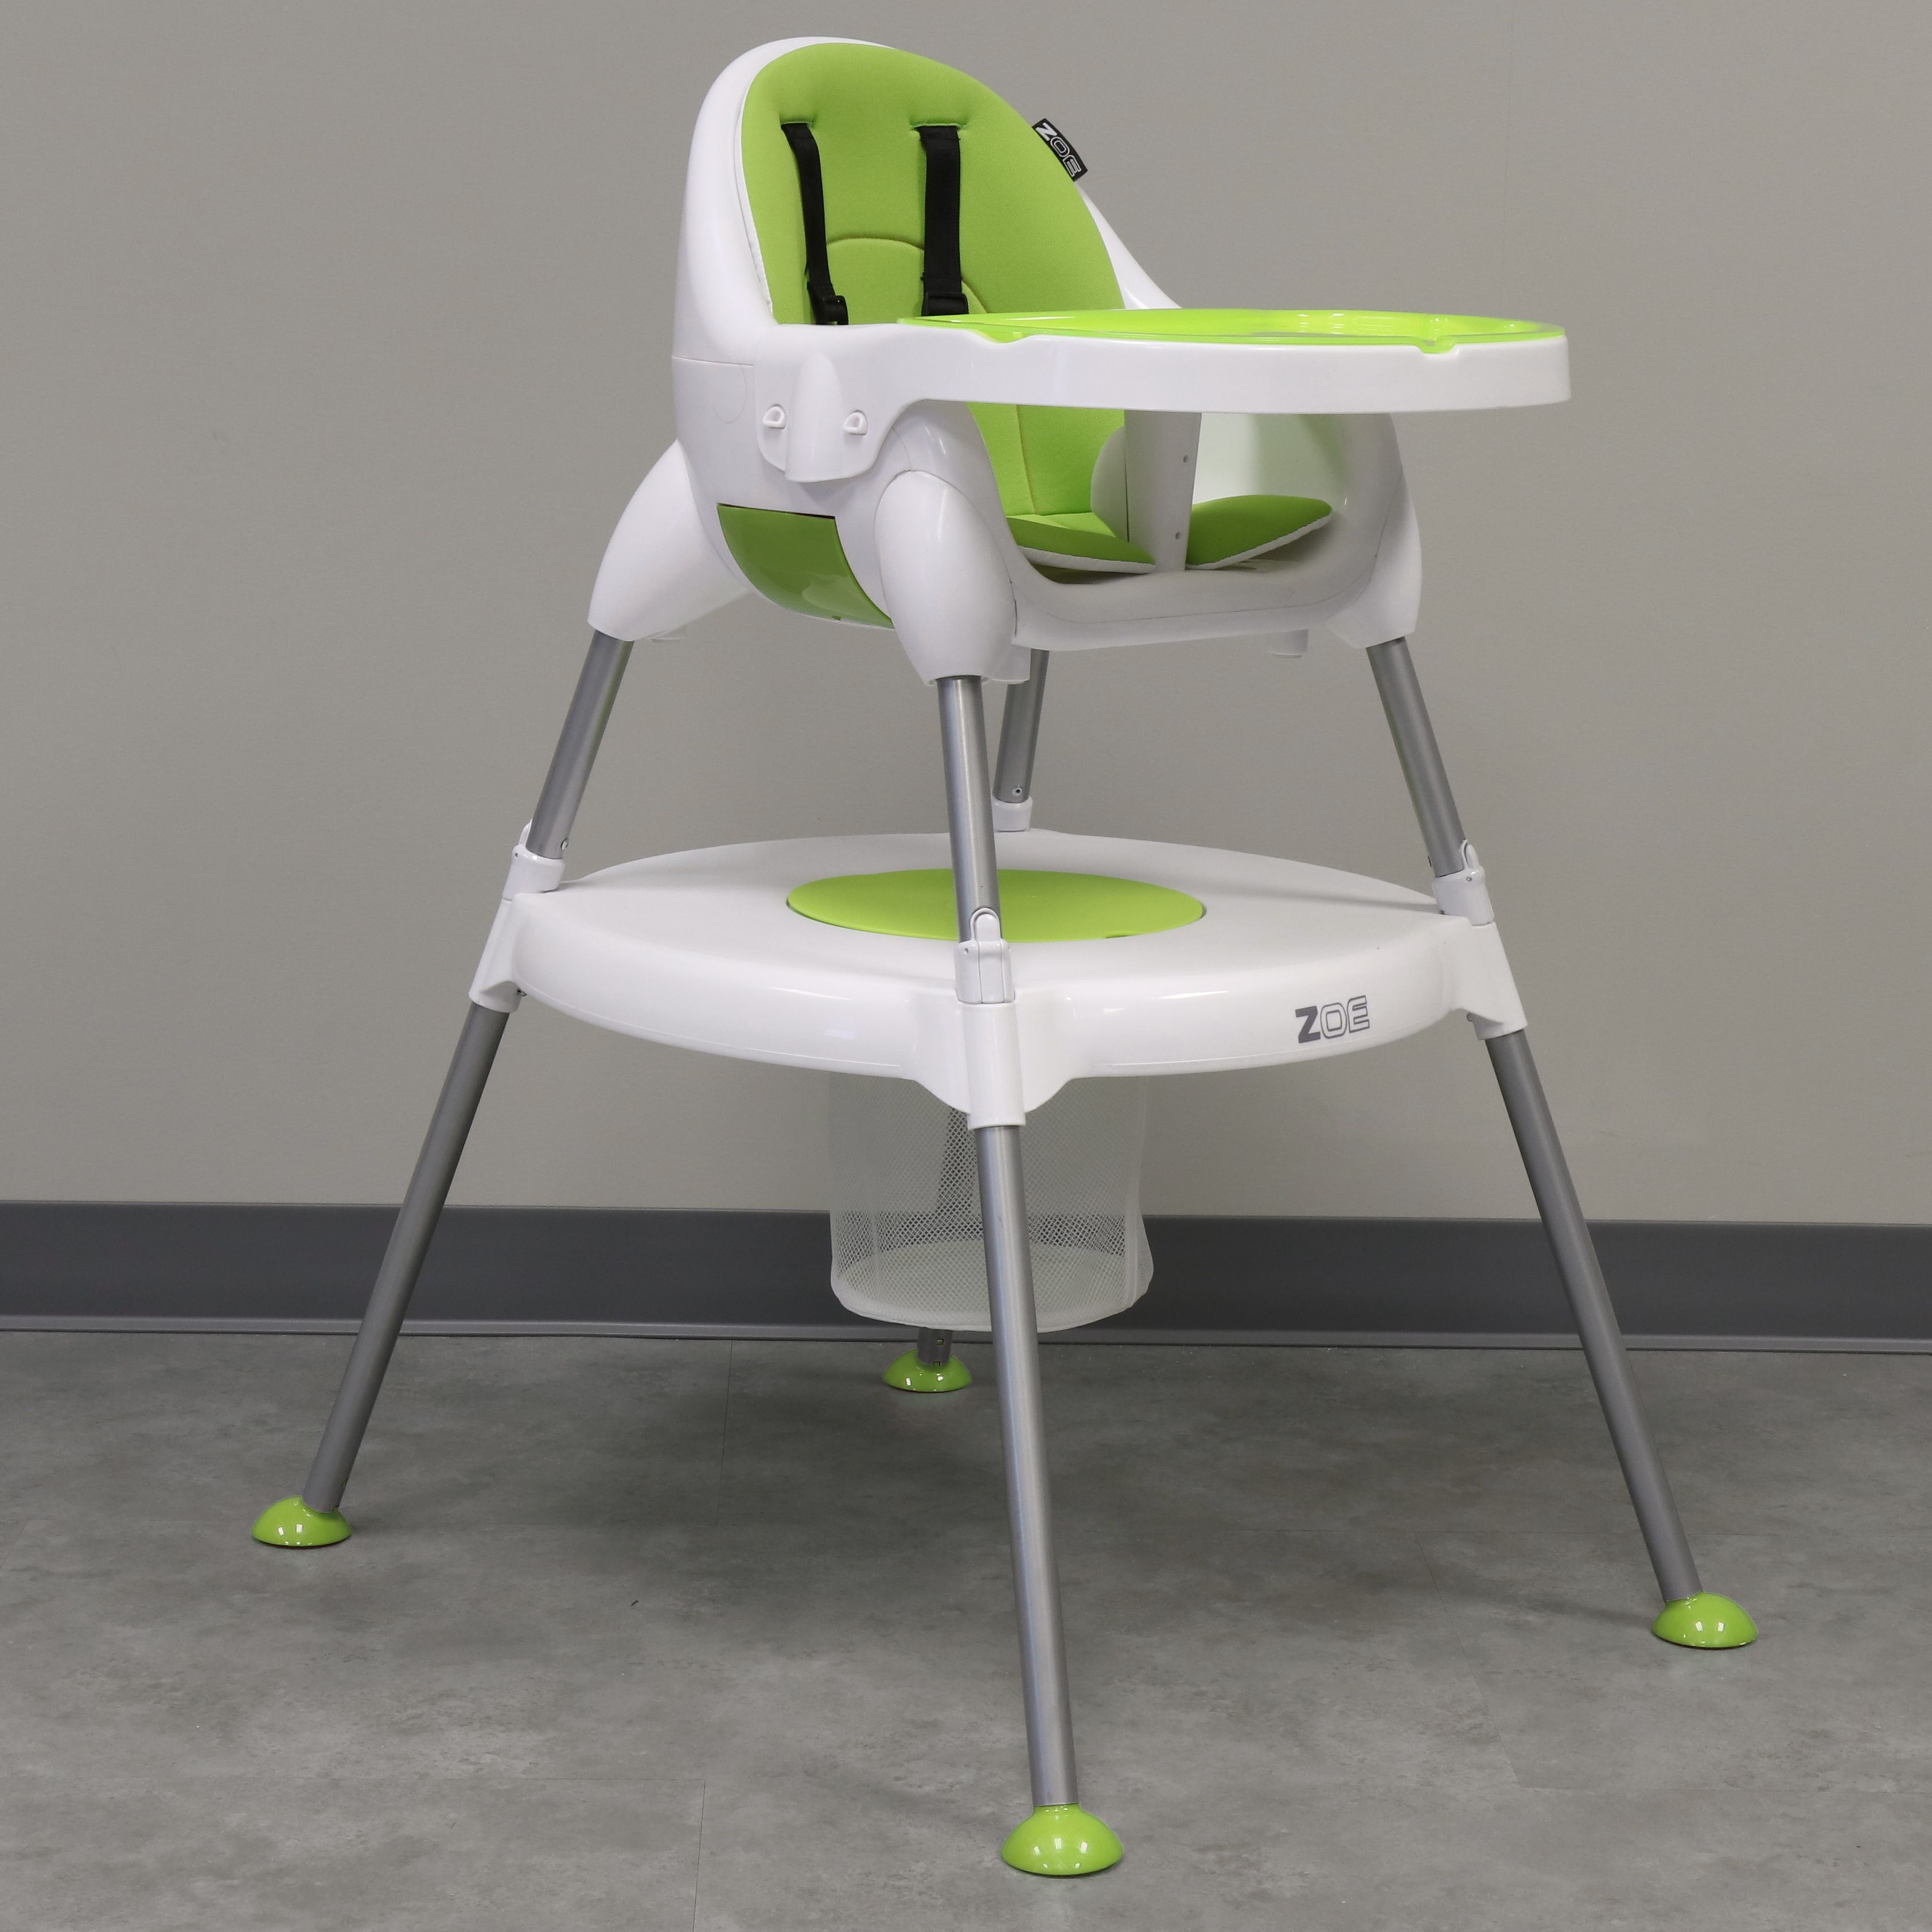 evenflo compact high chair recall zoe 5 in 1 best portable travel